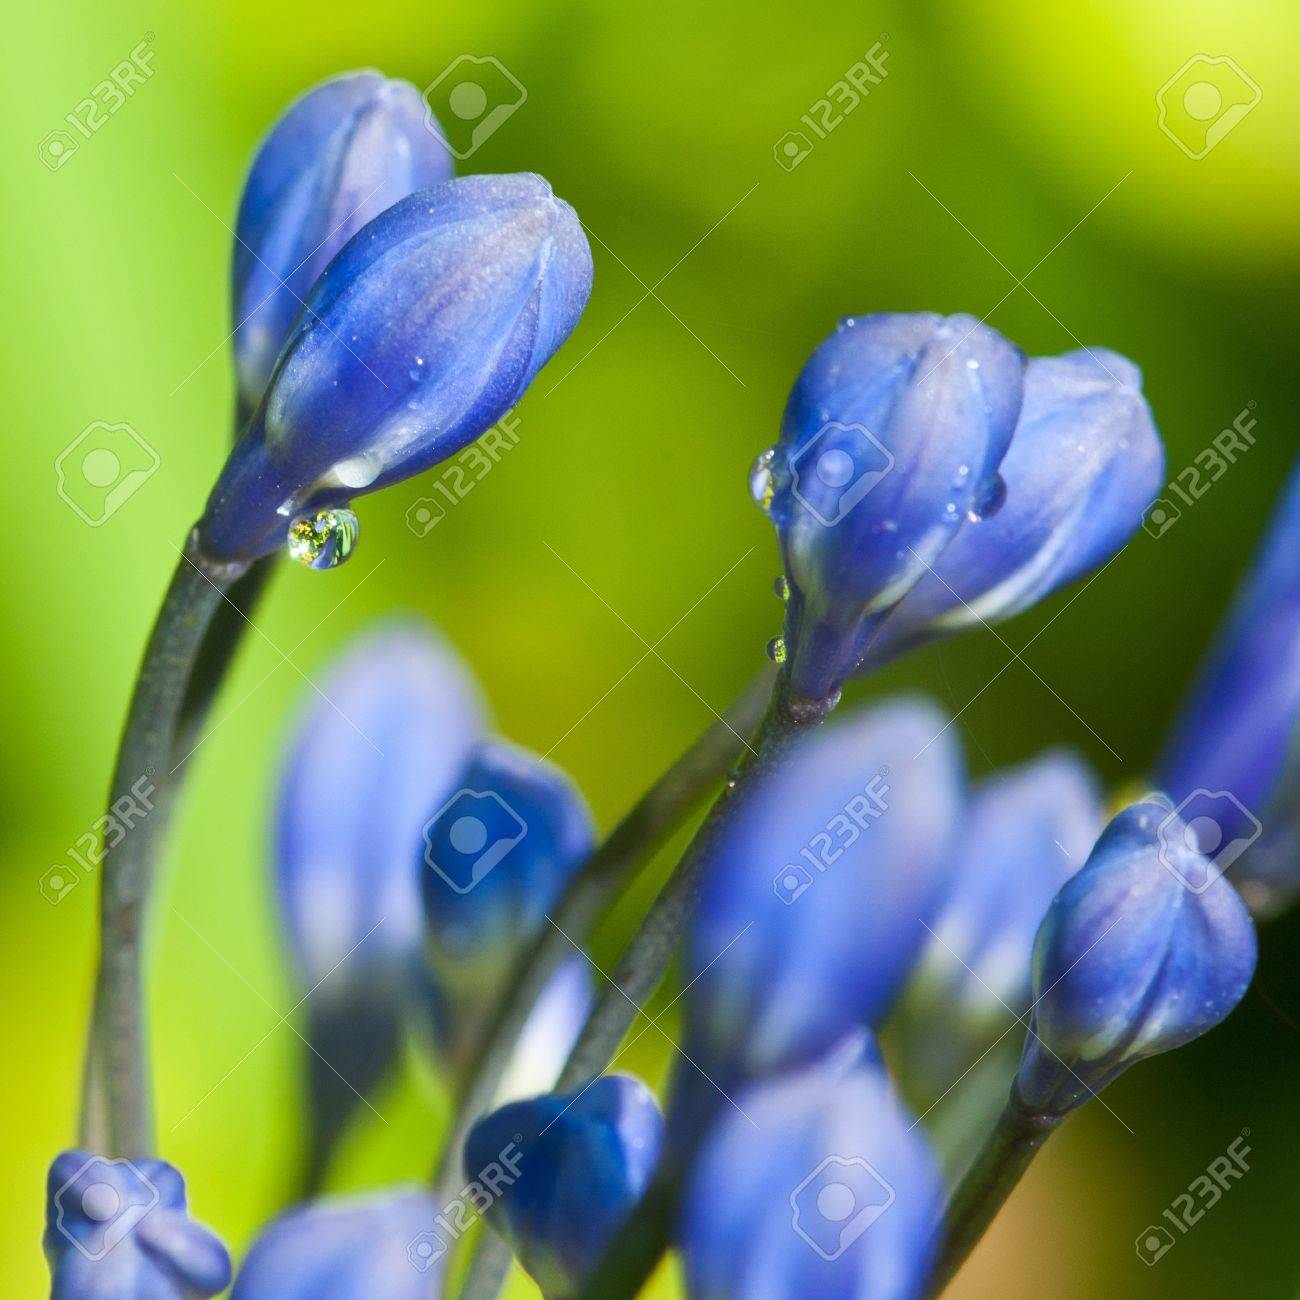 A collection of blue agapanthus buds. Stock Photo - 10516119